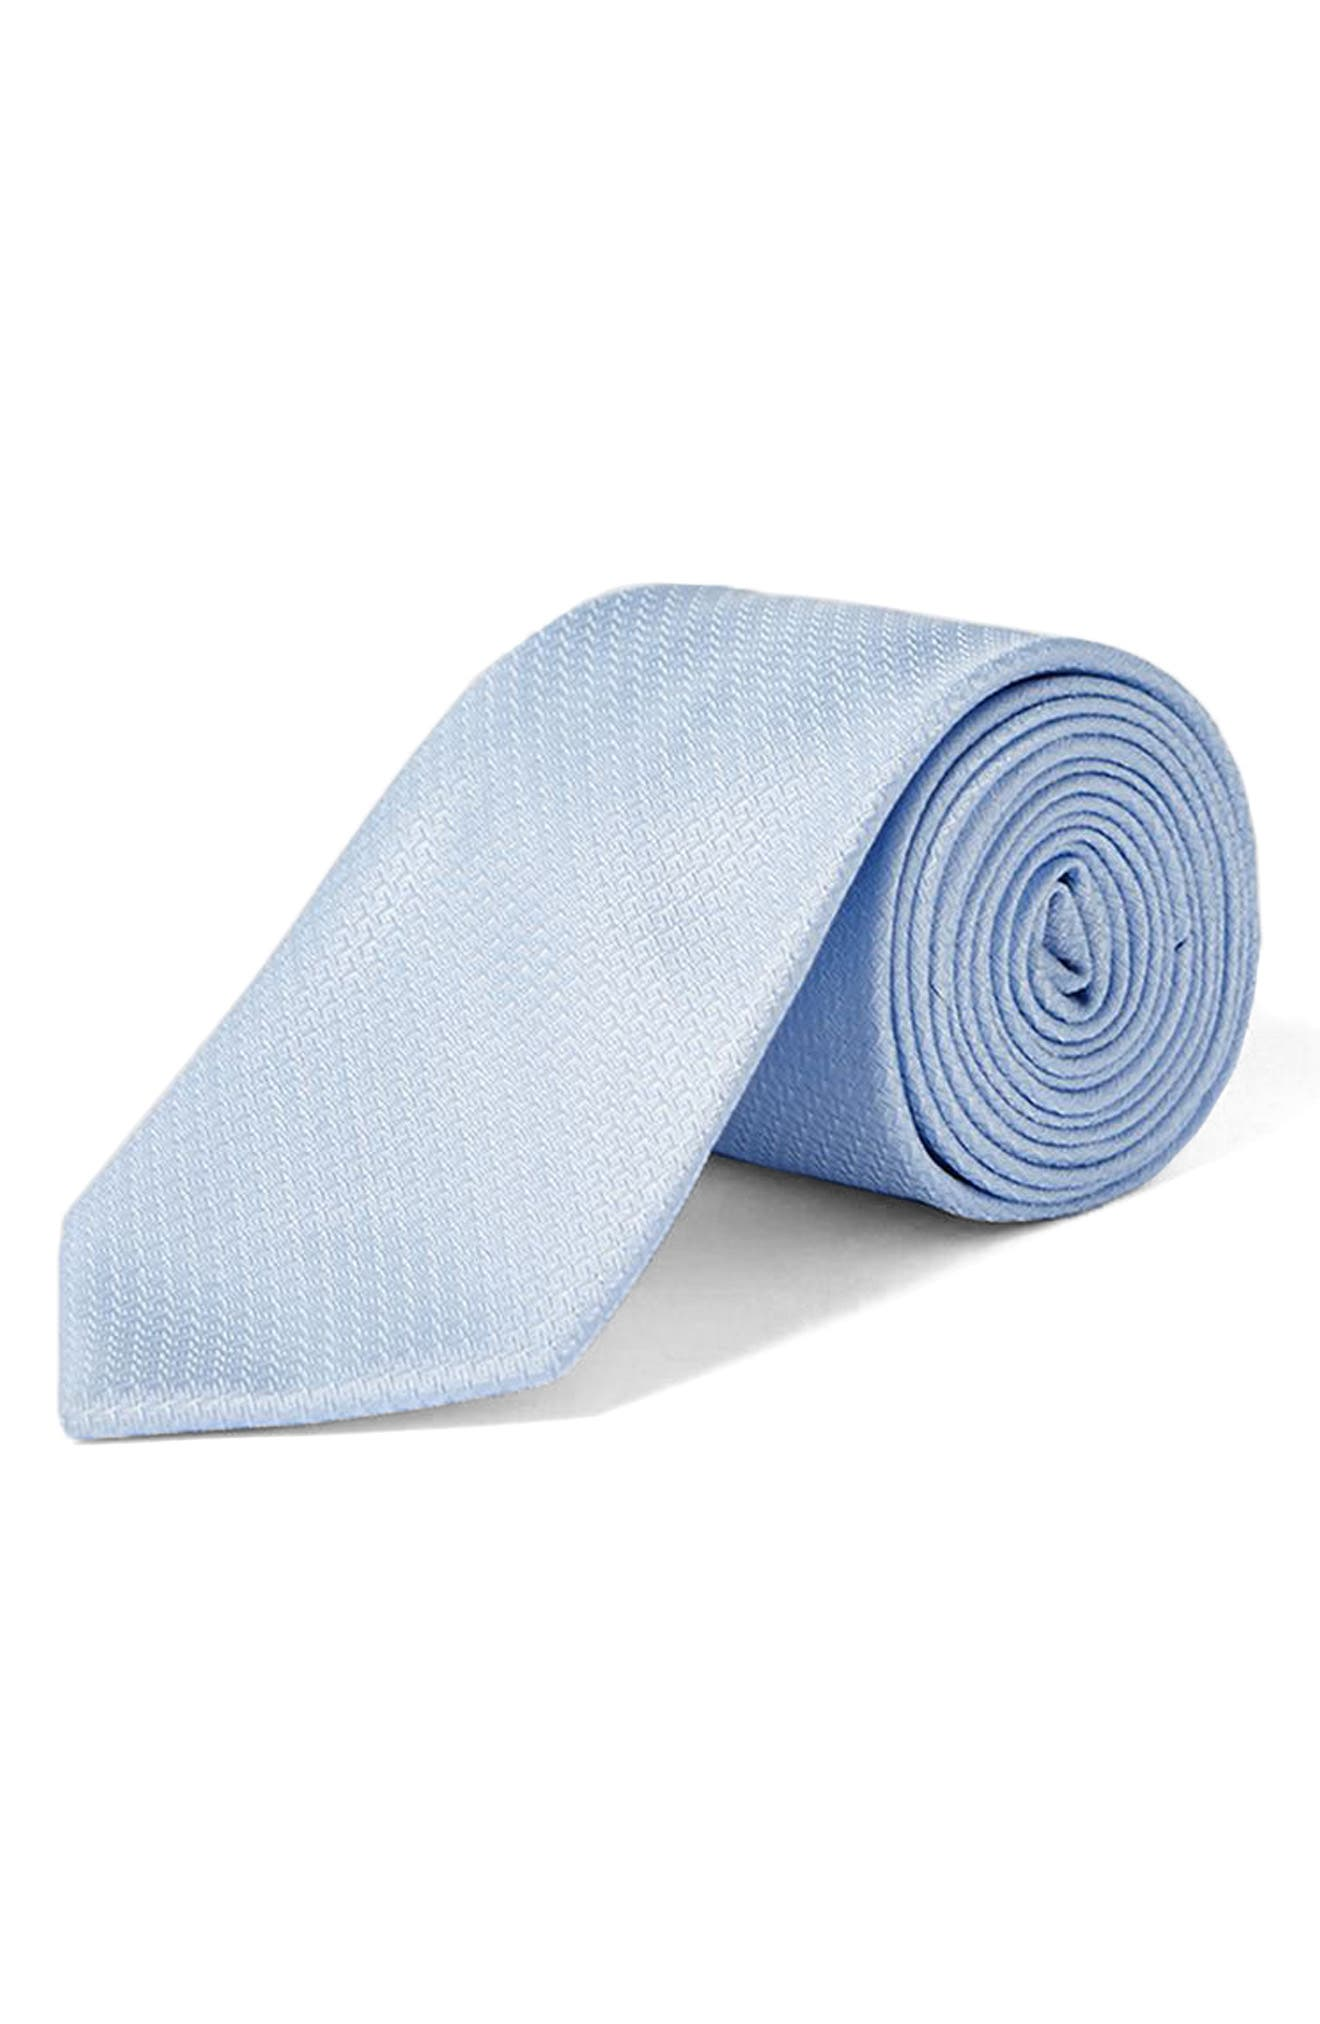 Textured Woven Tie,                             Main thumbnail 1, color,                             450